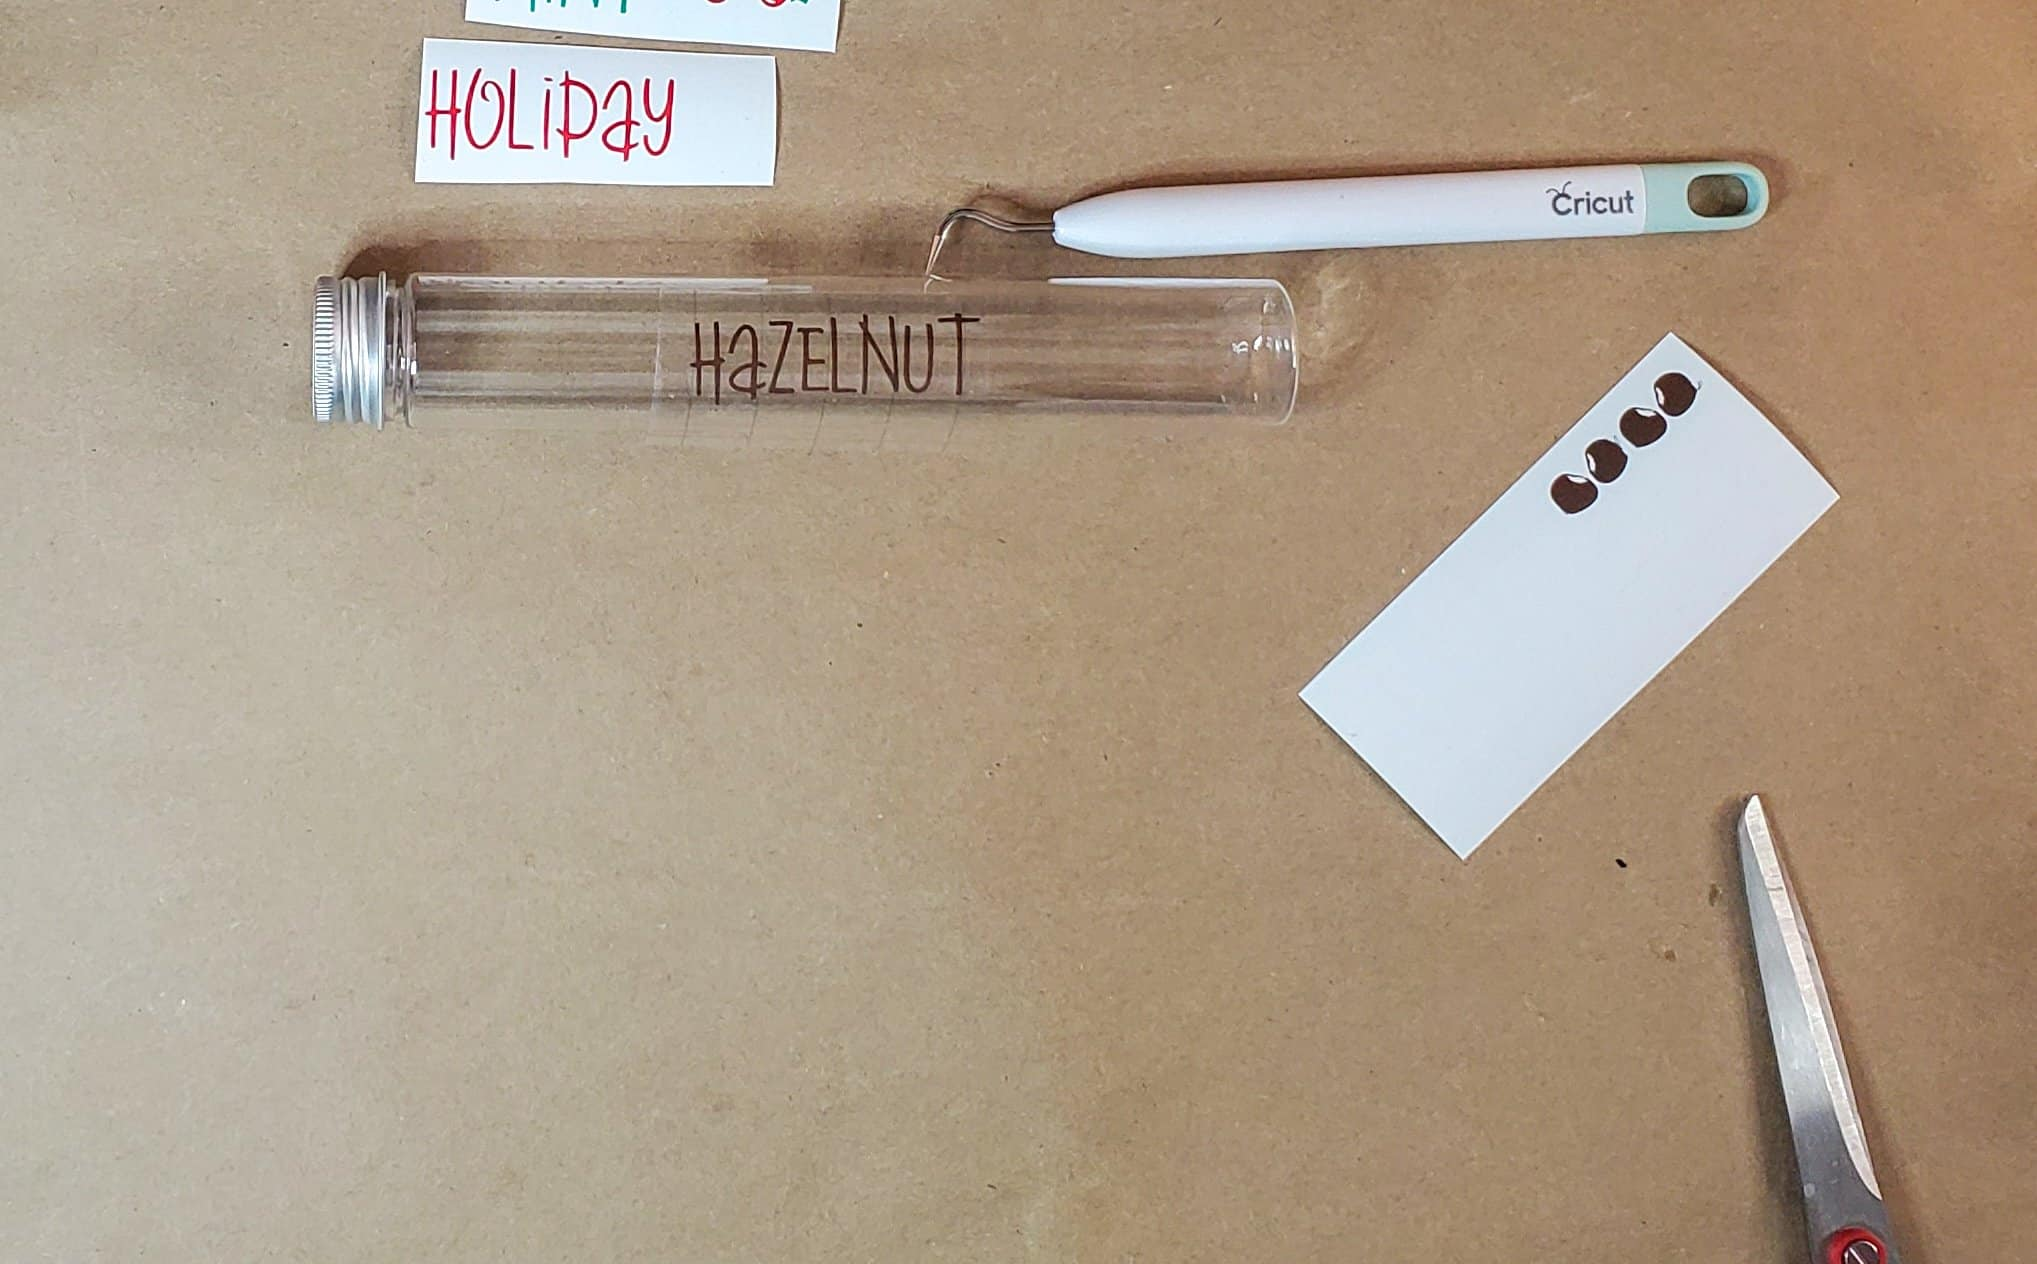 Add Hazelnut lettering to container tube